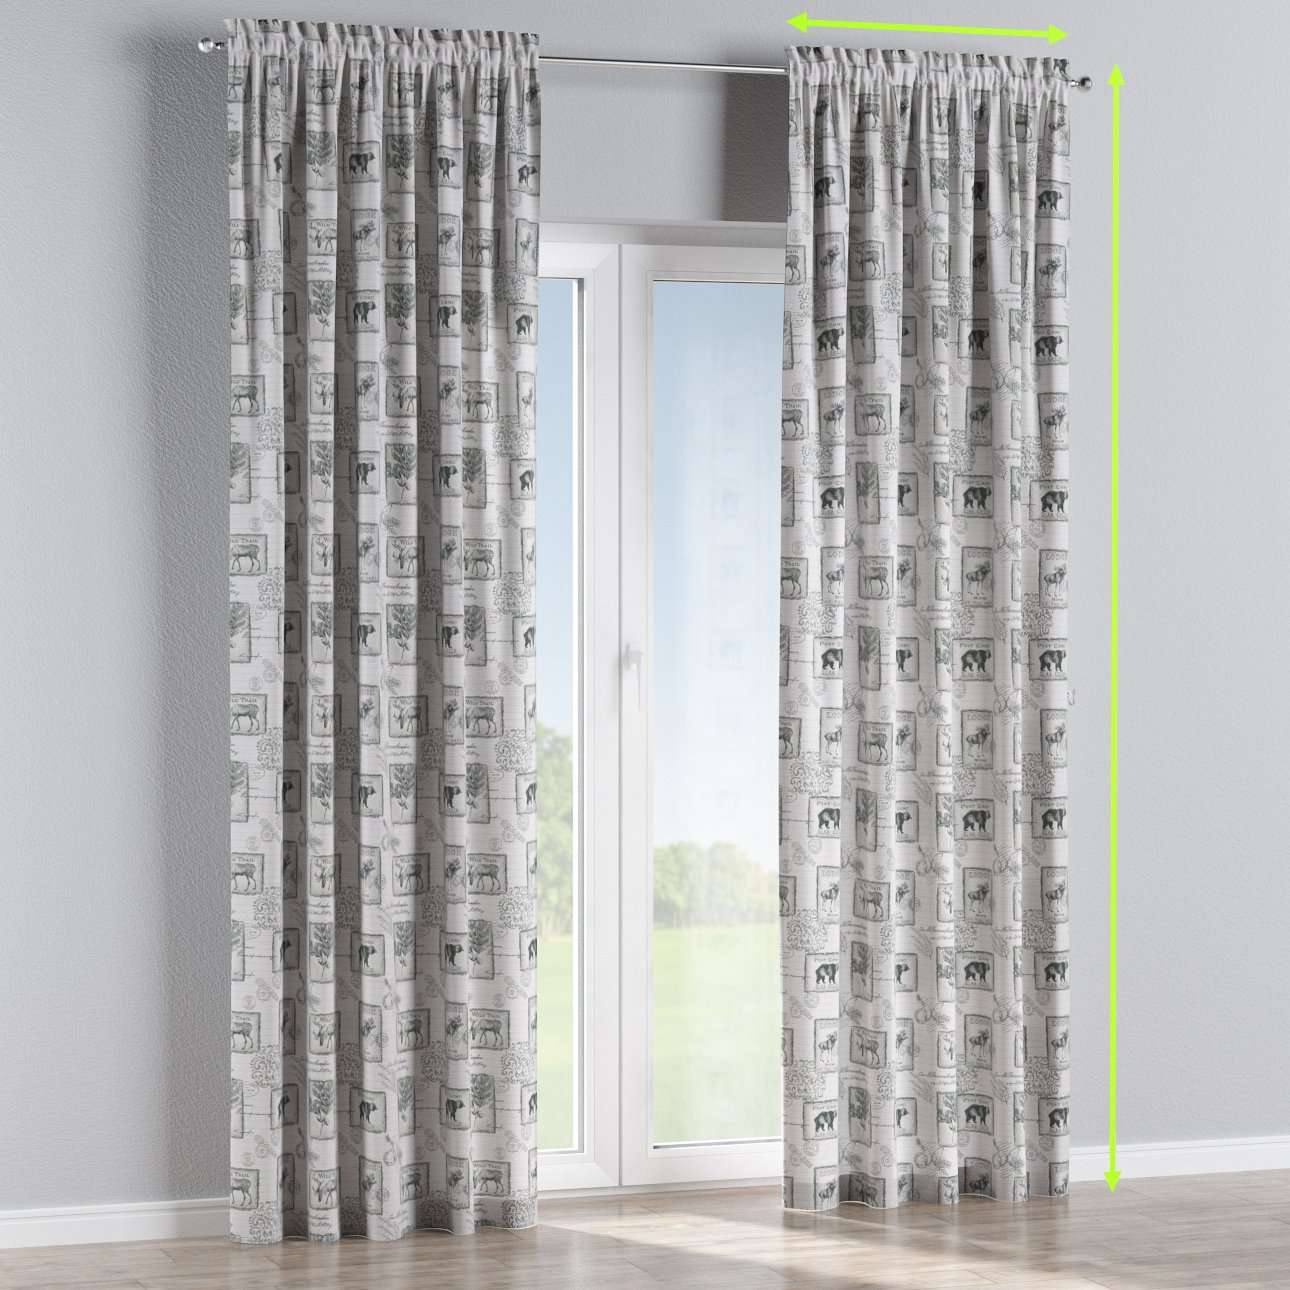 Slot and frill curtains in collection Nordic, fabric: 630-18